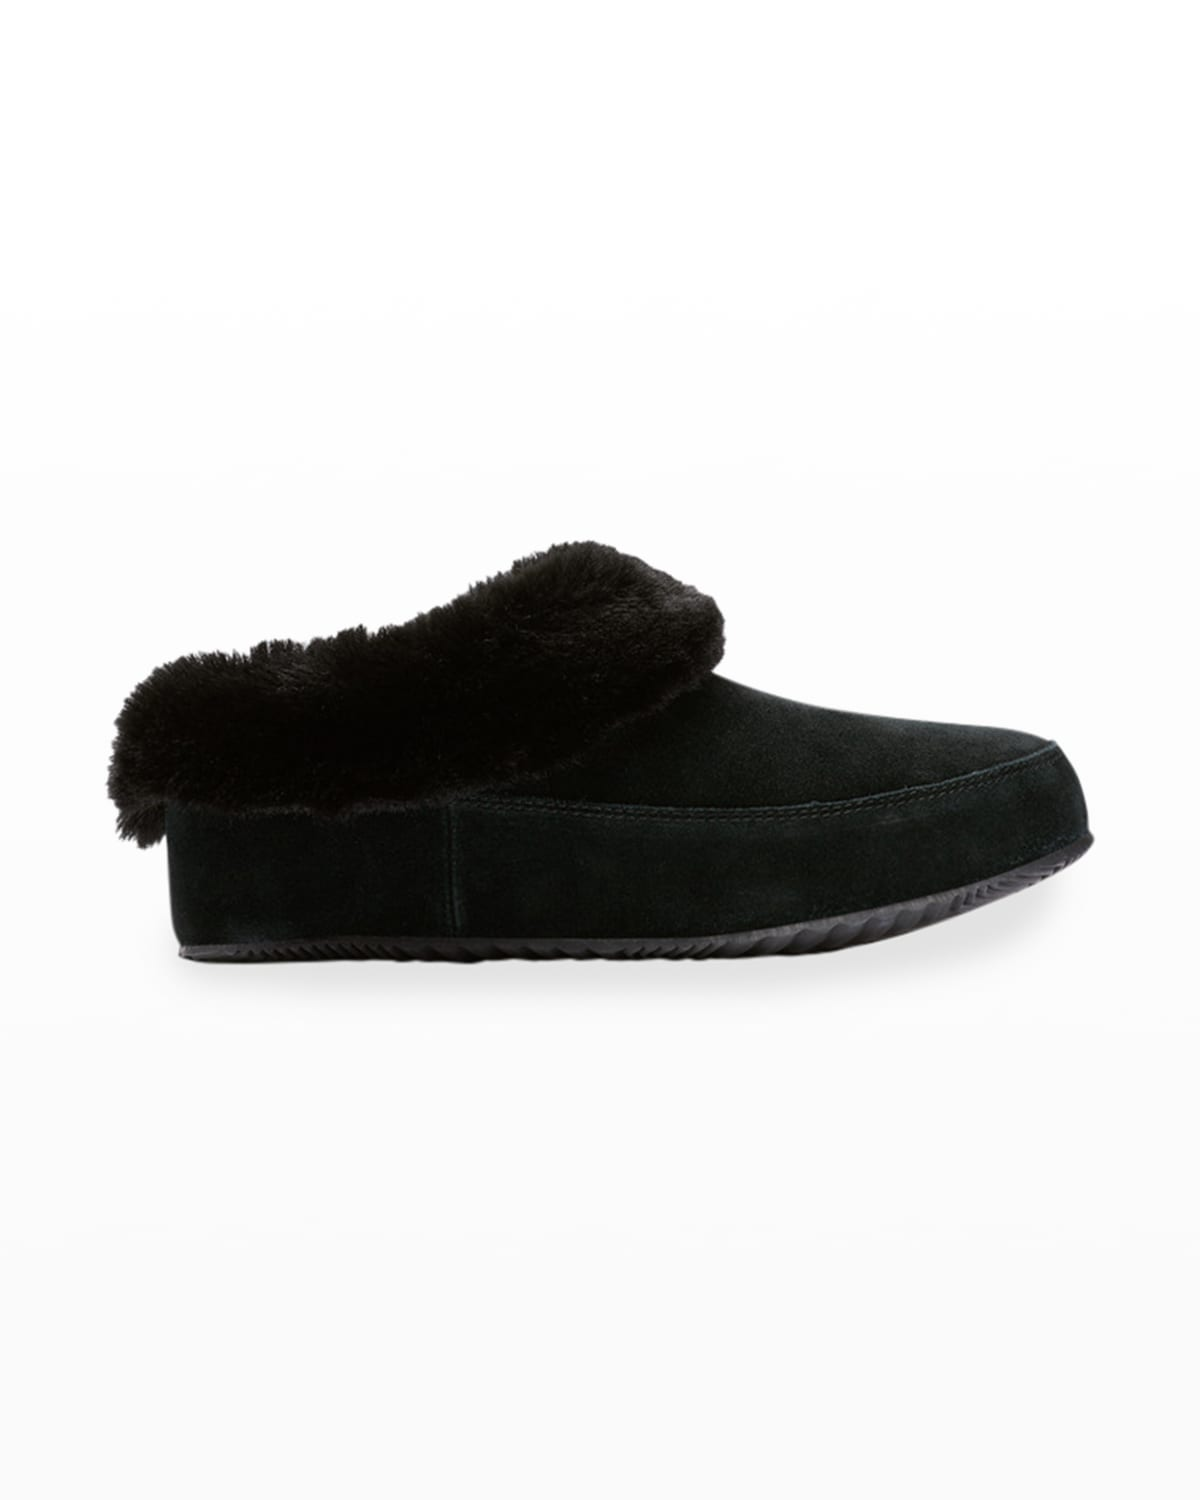 Go Coffee Run Suede Slippers